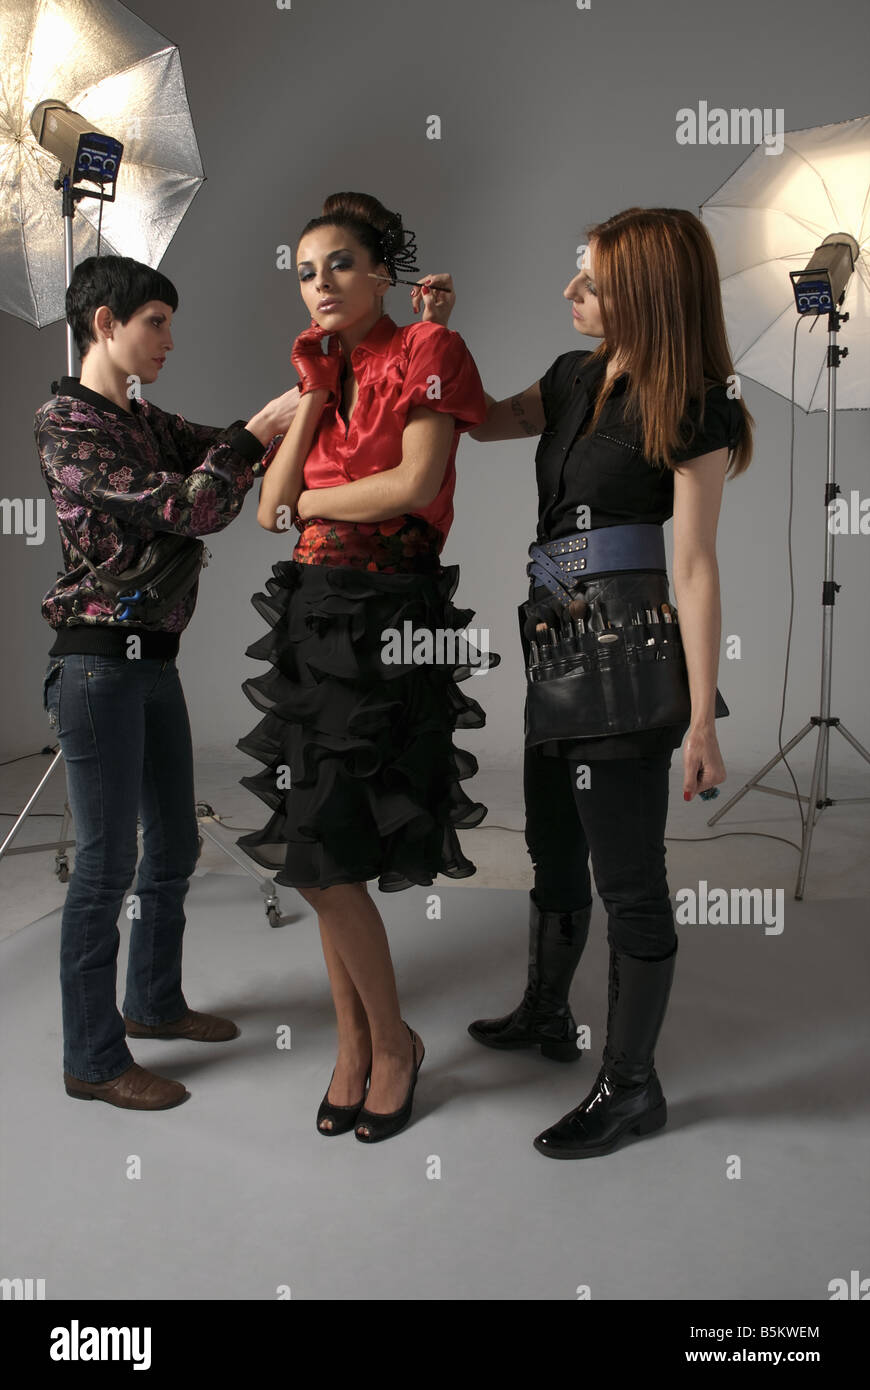 Professionals on fashion shooting set Stock Photo